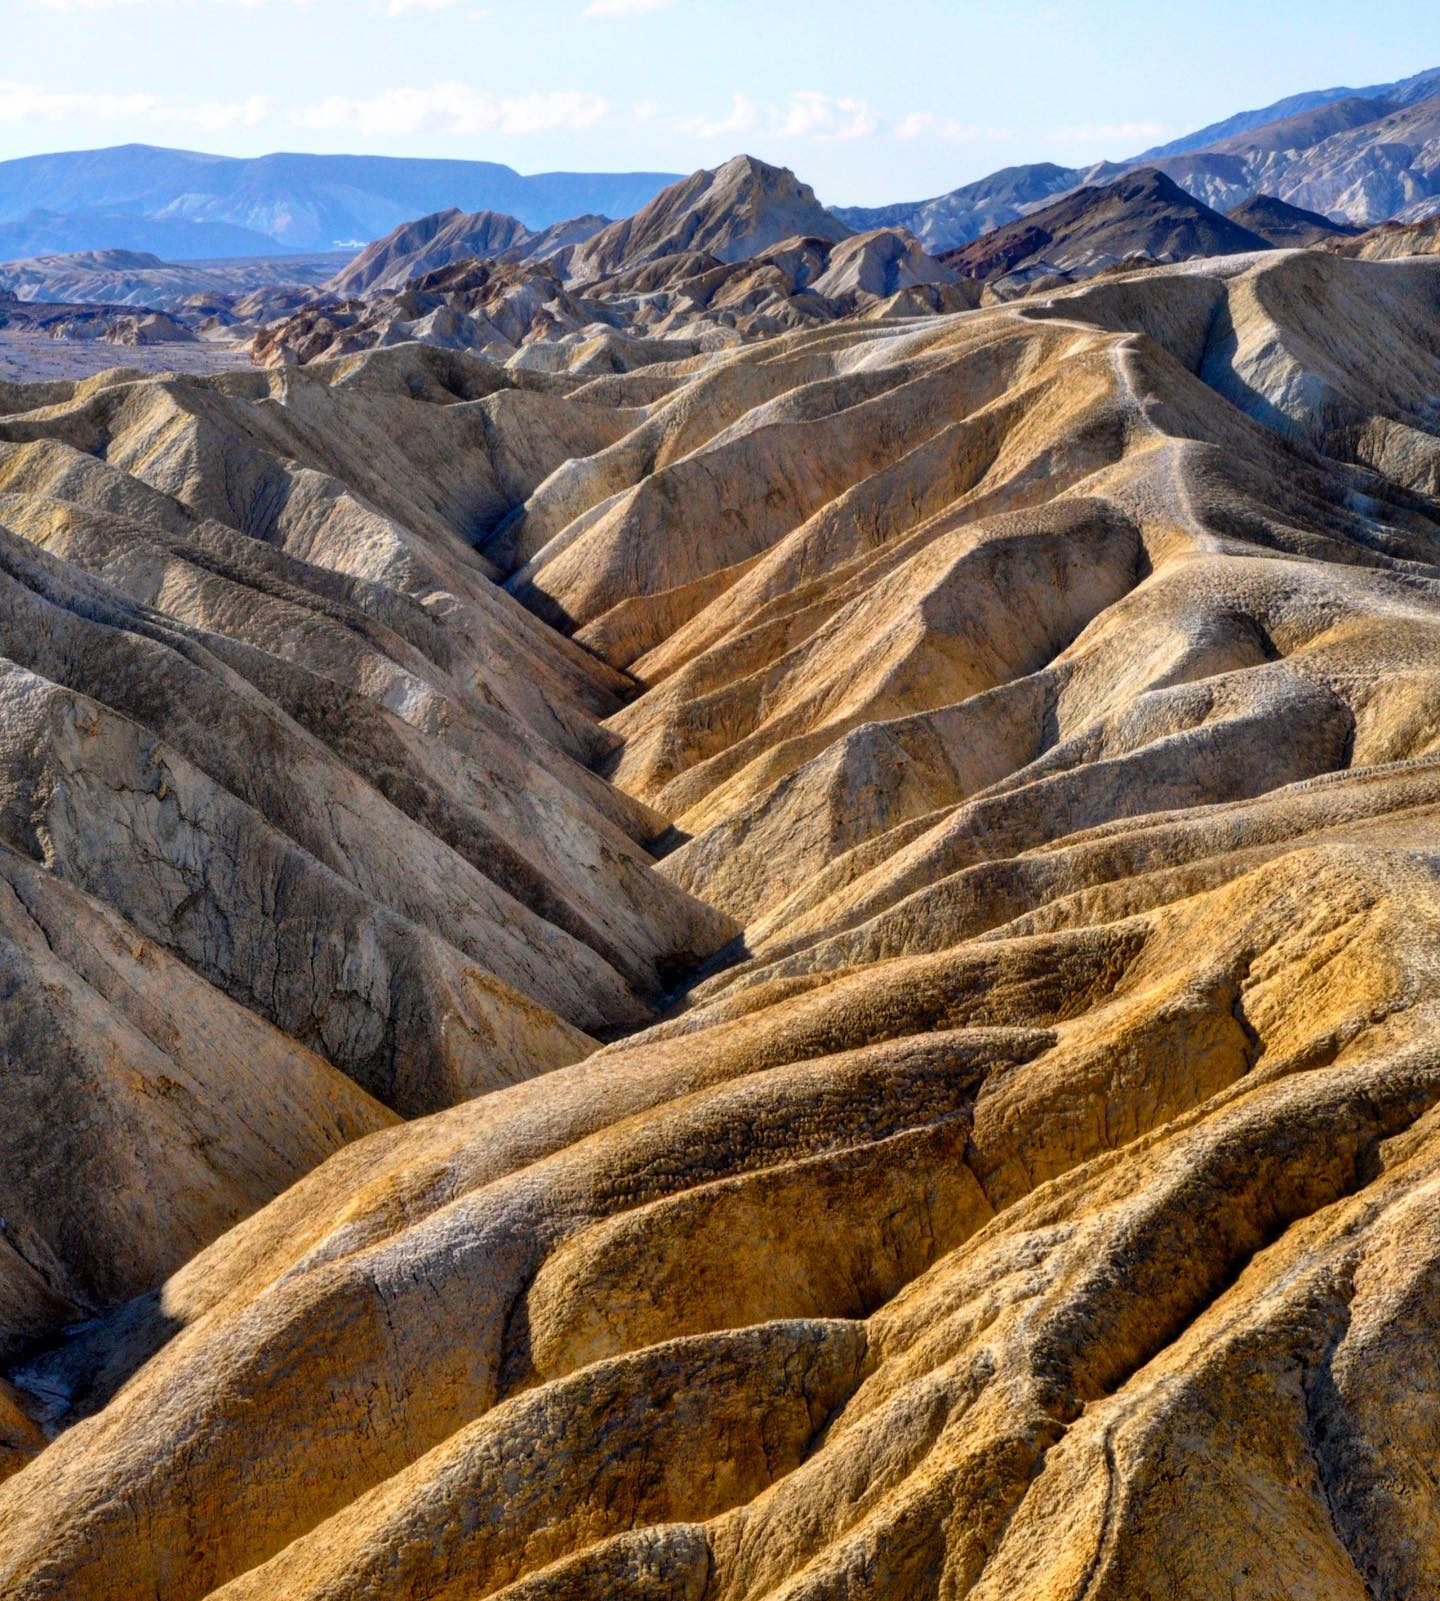 Zabriskie Point, Death Valley NP, California Located in the east of Death Valley, Zabriskie Point offers a glimpse of a unique landscape.  #usa #us #usatravel #usatravels #usareisen #usaroadtrip #usatrip #america #amerika #california #deathvalleylove #deathvalley #deathvalleynps #zabriskiepoint #desert #desertlandscape #desertlove #uniqueplaces #desertphotography #travelphotography #travelpics #bestofcalifornia #traveltheworld #traveling #travelingusa #travelcommunity #travelcouples #travelcaptures #traveltips #travelawesome